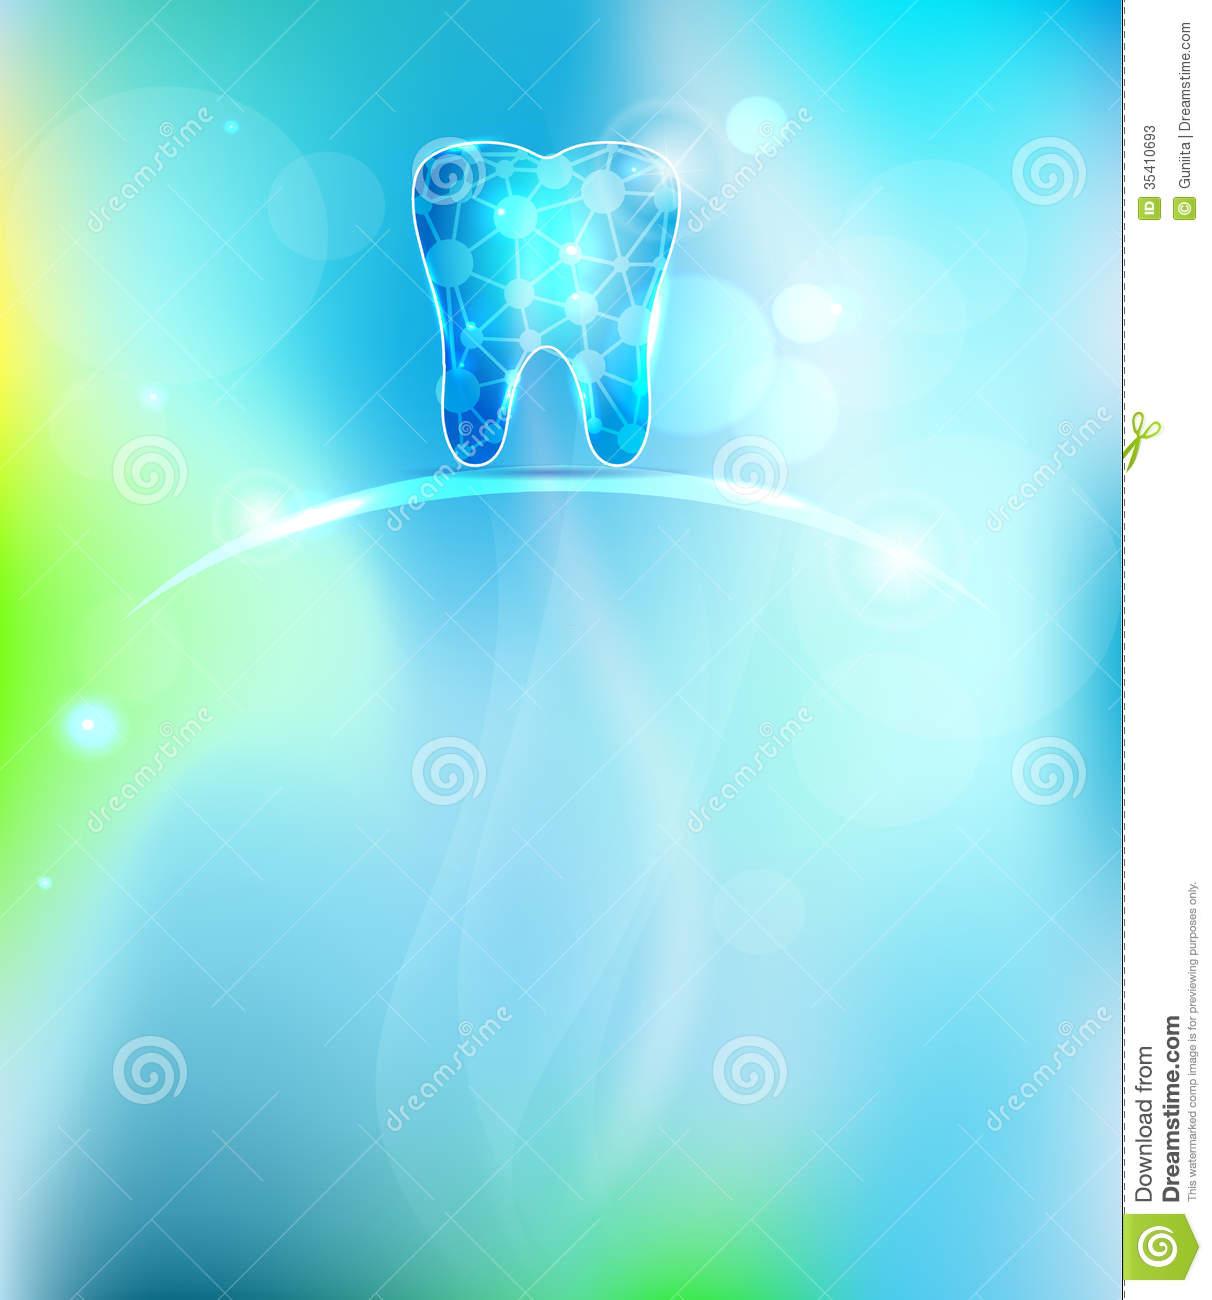 Dental Background Stock Photos - Image: 35410693